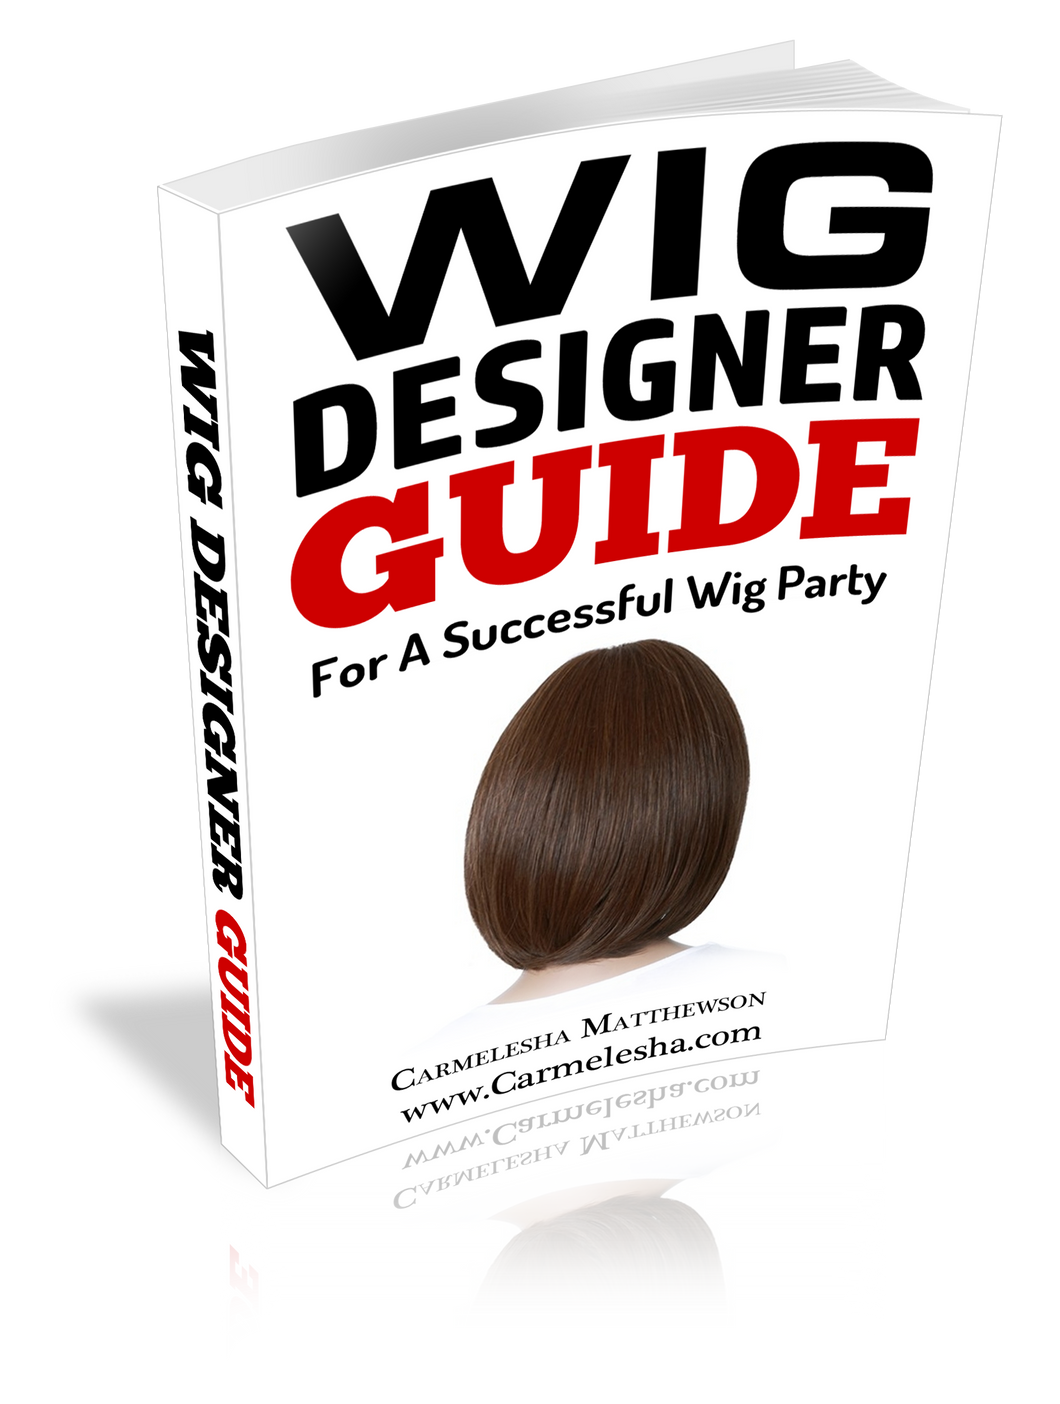 Wig Designer Guide: For A Successful Wig Party